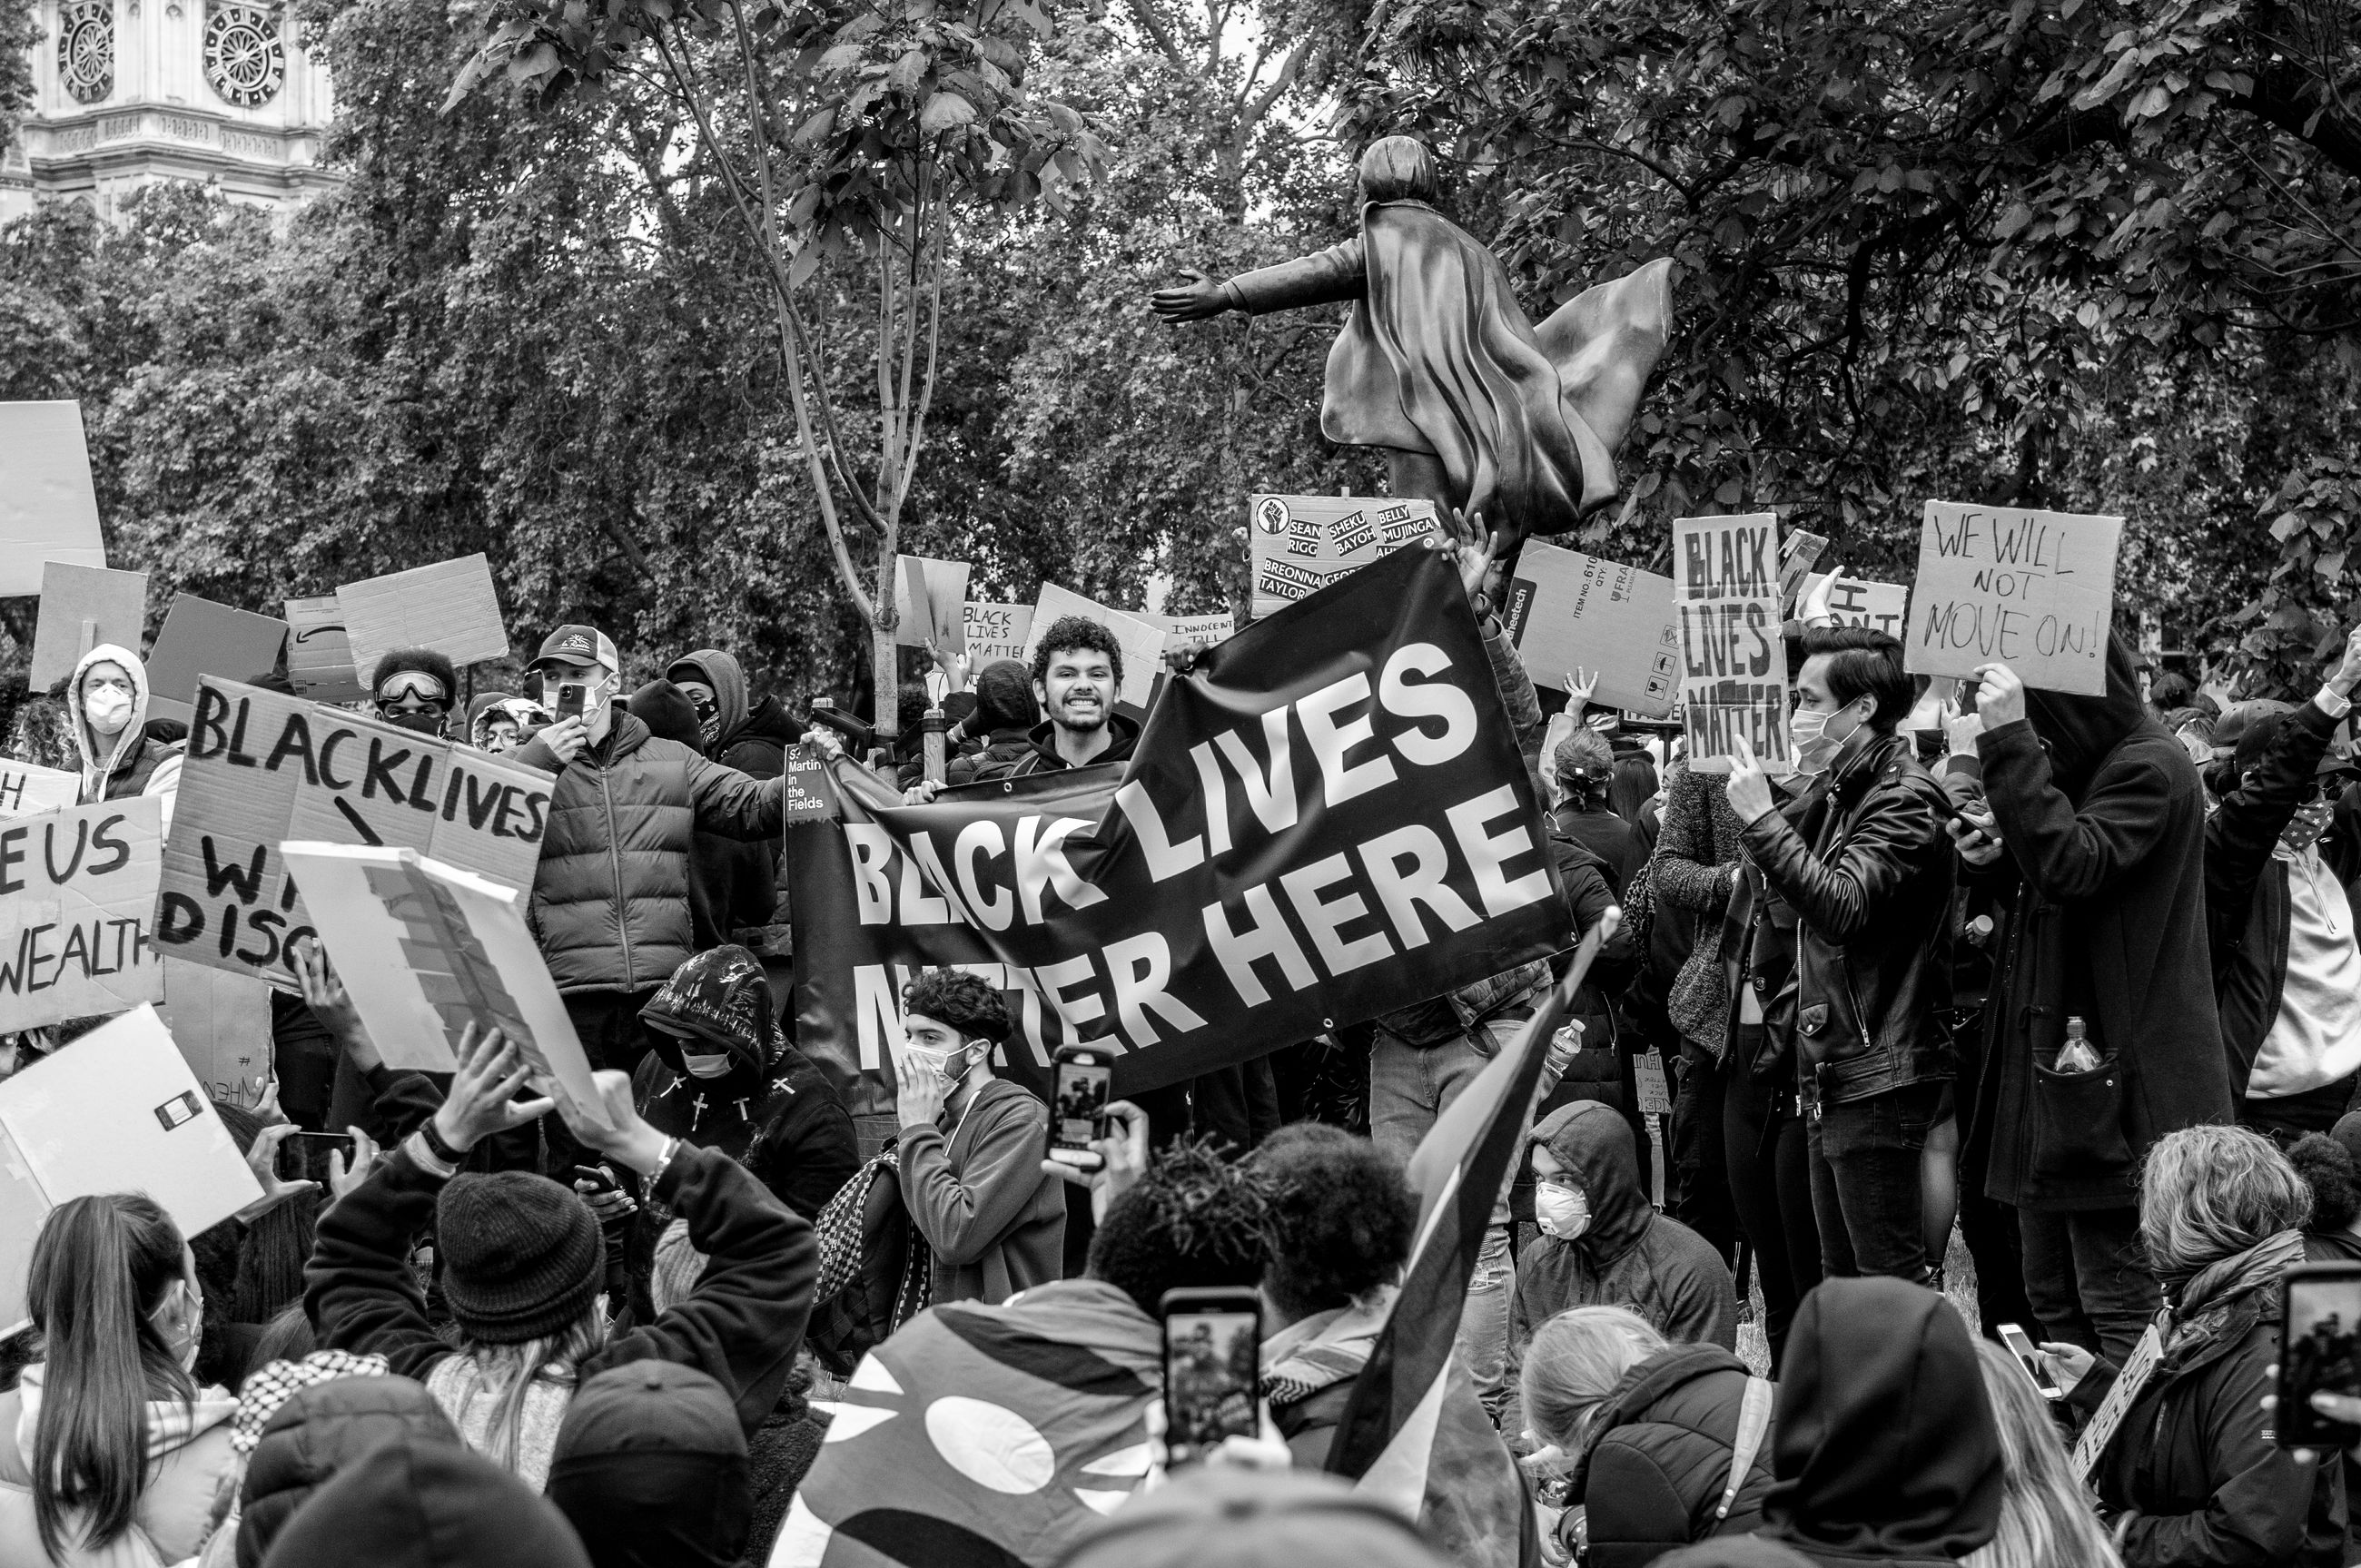 crowd, protest, black and white, large group of people, group of people, protestor, monochrome, tree, monochrome photography, day, men, women, text, clothing, adult, plant, architecture, outdoors, person, city, communication, street